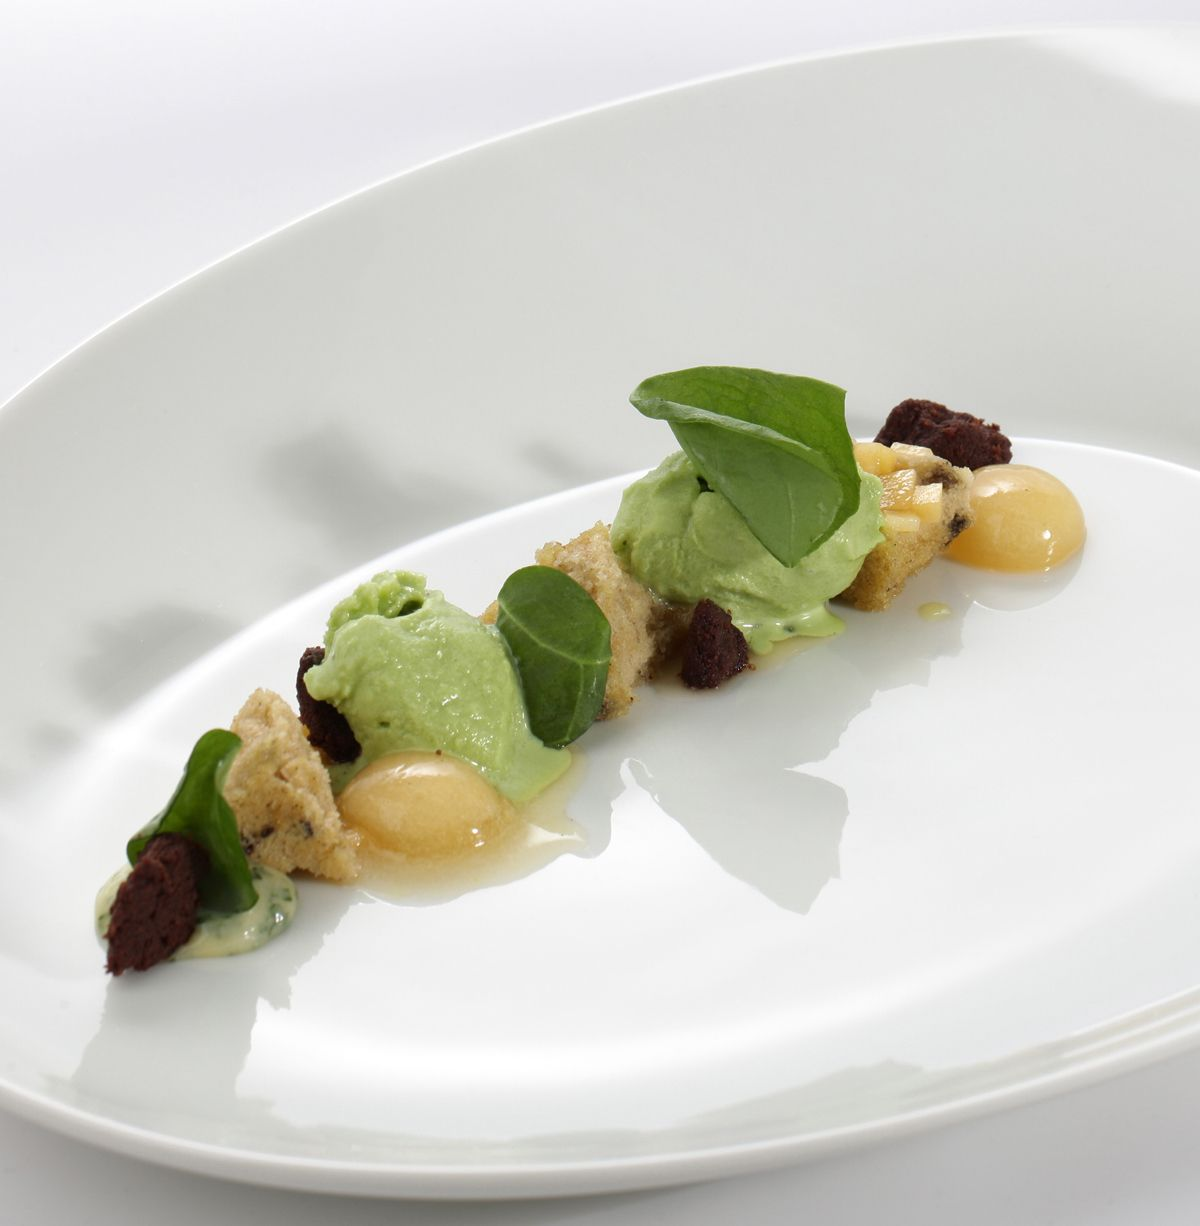 Dessert. Stefan Lenz, head chef at the Austrian Relais & Châteaux Hotel Tennerhof in Kitzbühel. http://www.four-magazine.com/articles/1984/chef-of-the-year